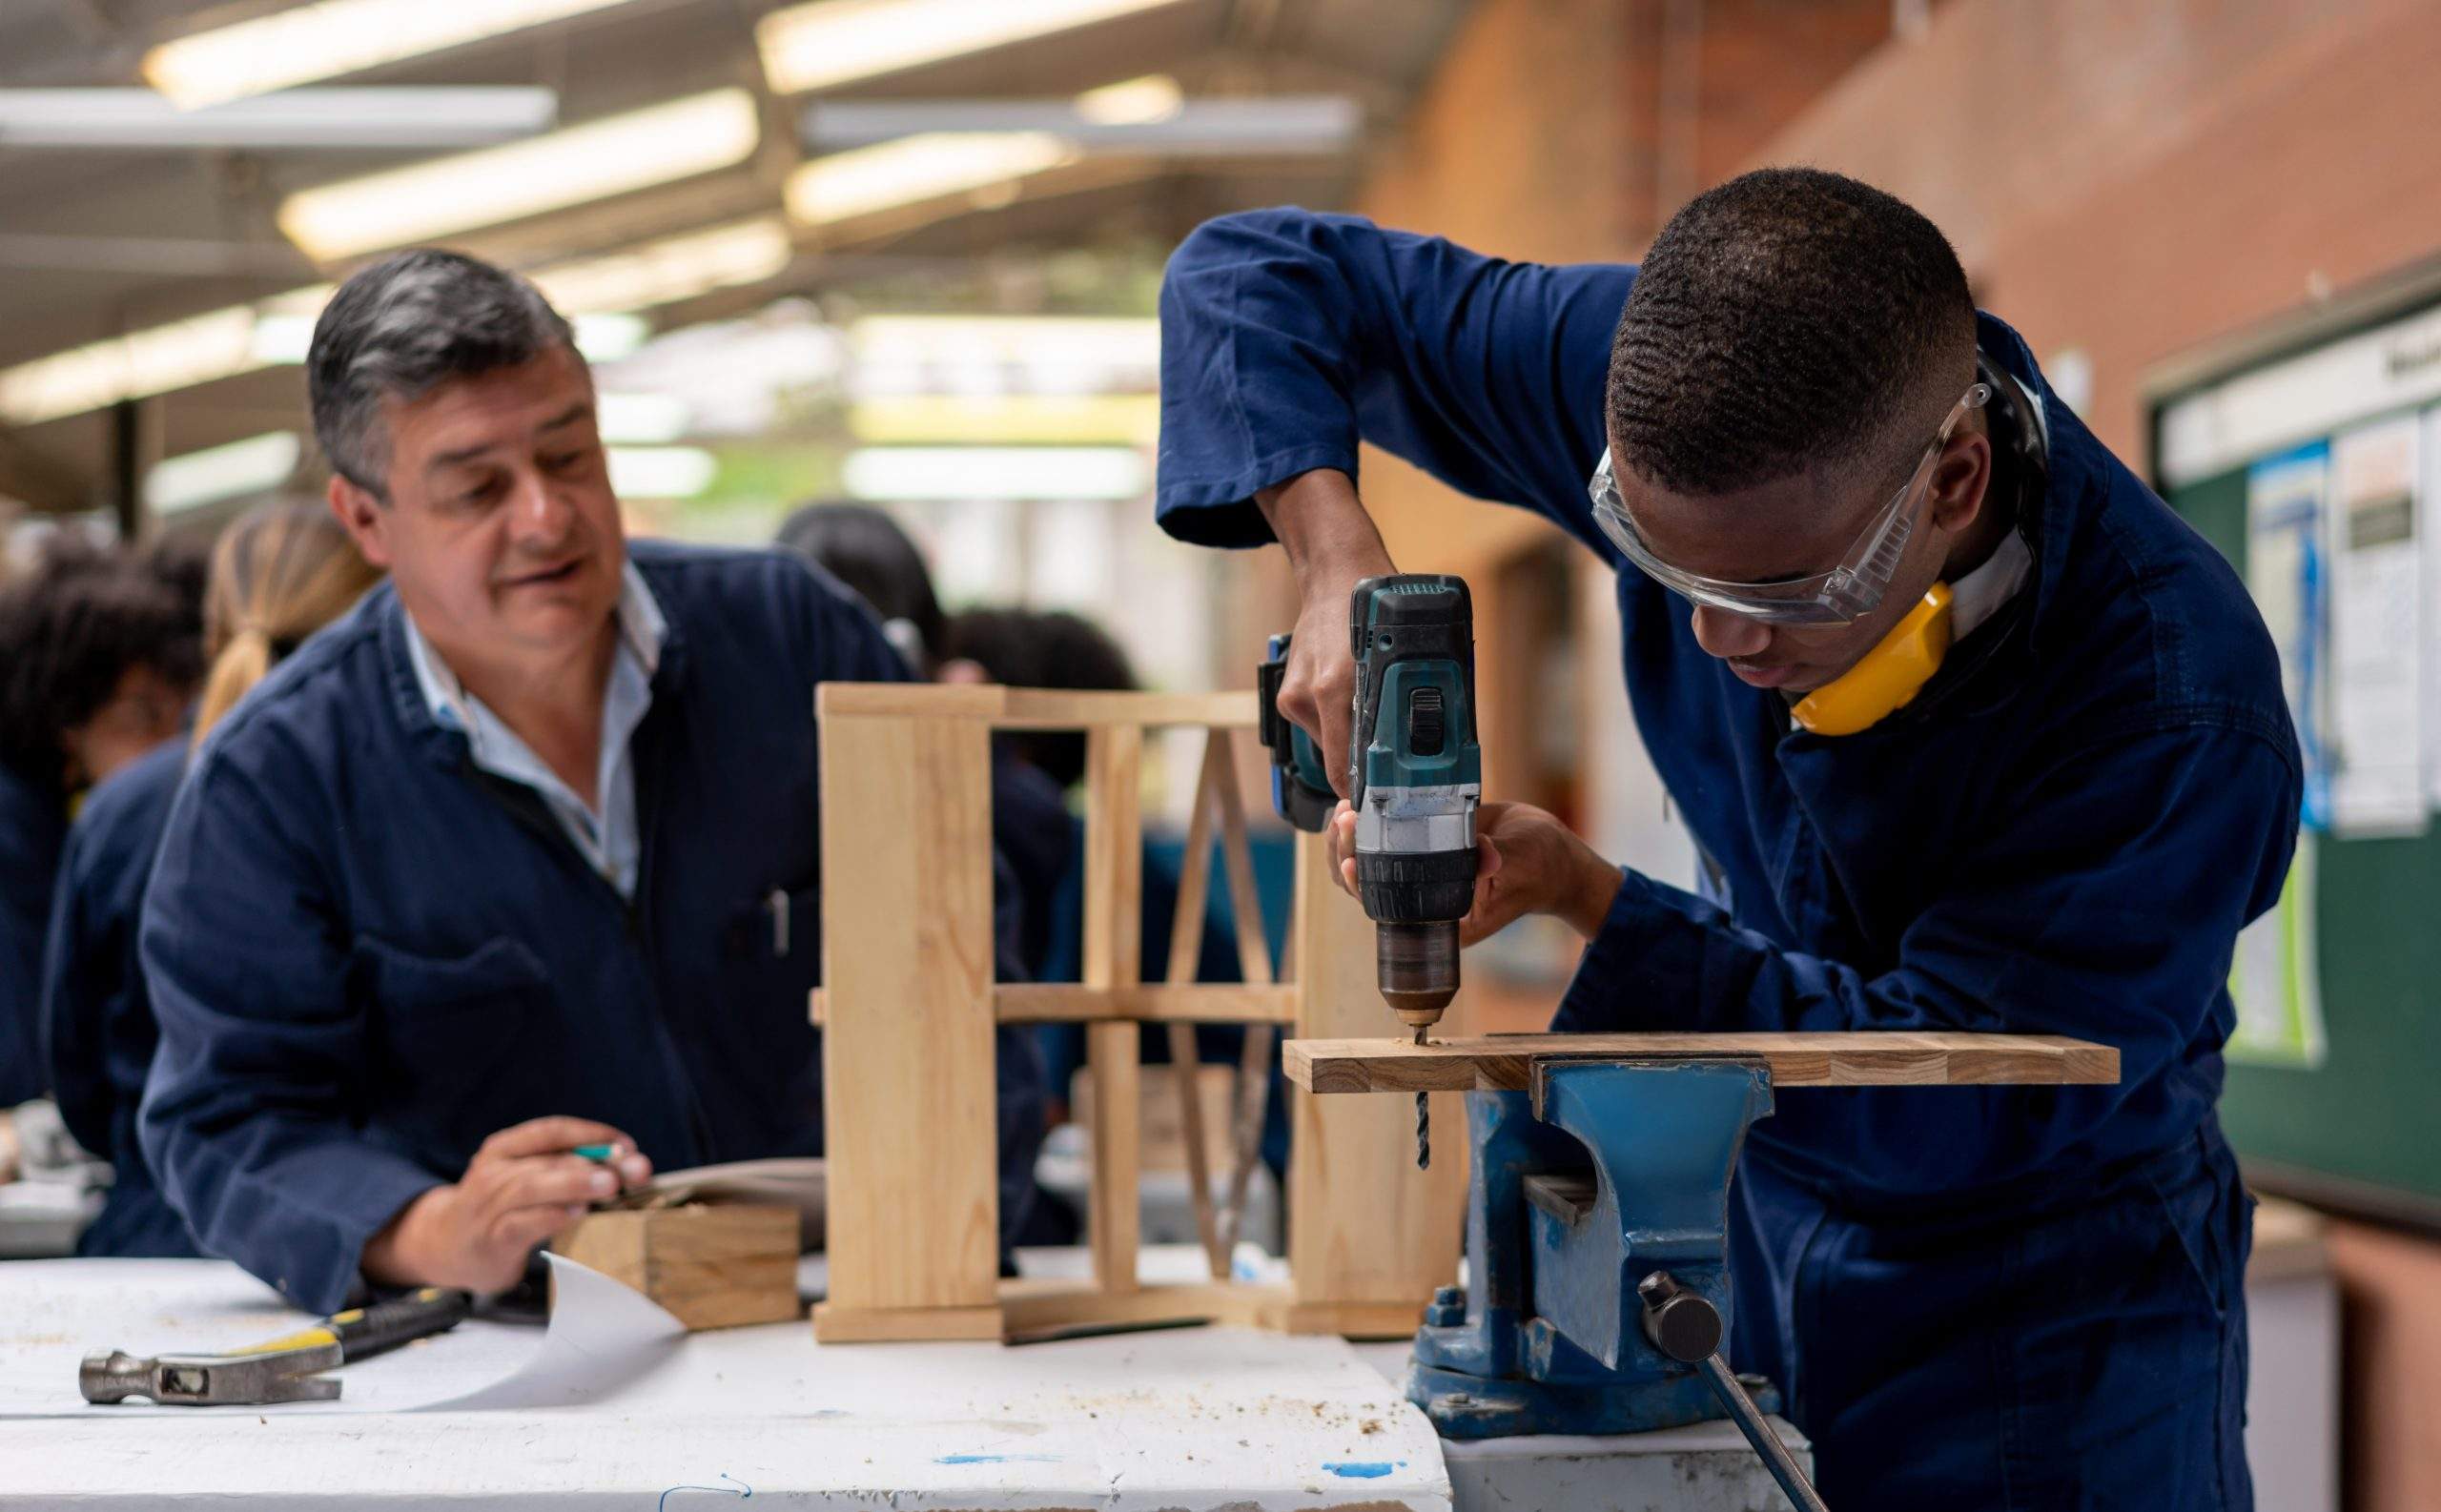 A young man drills a piece of wood while a tutor looks on